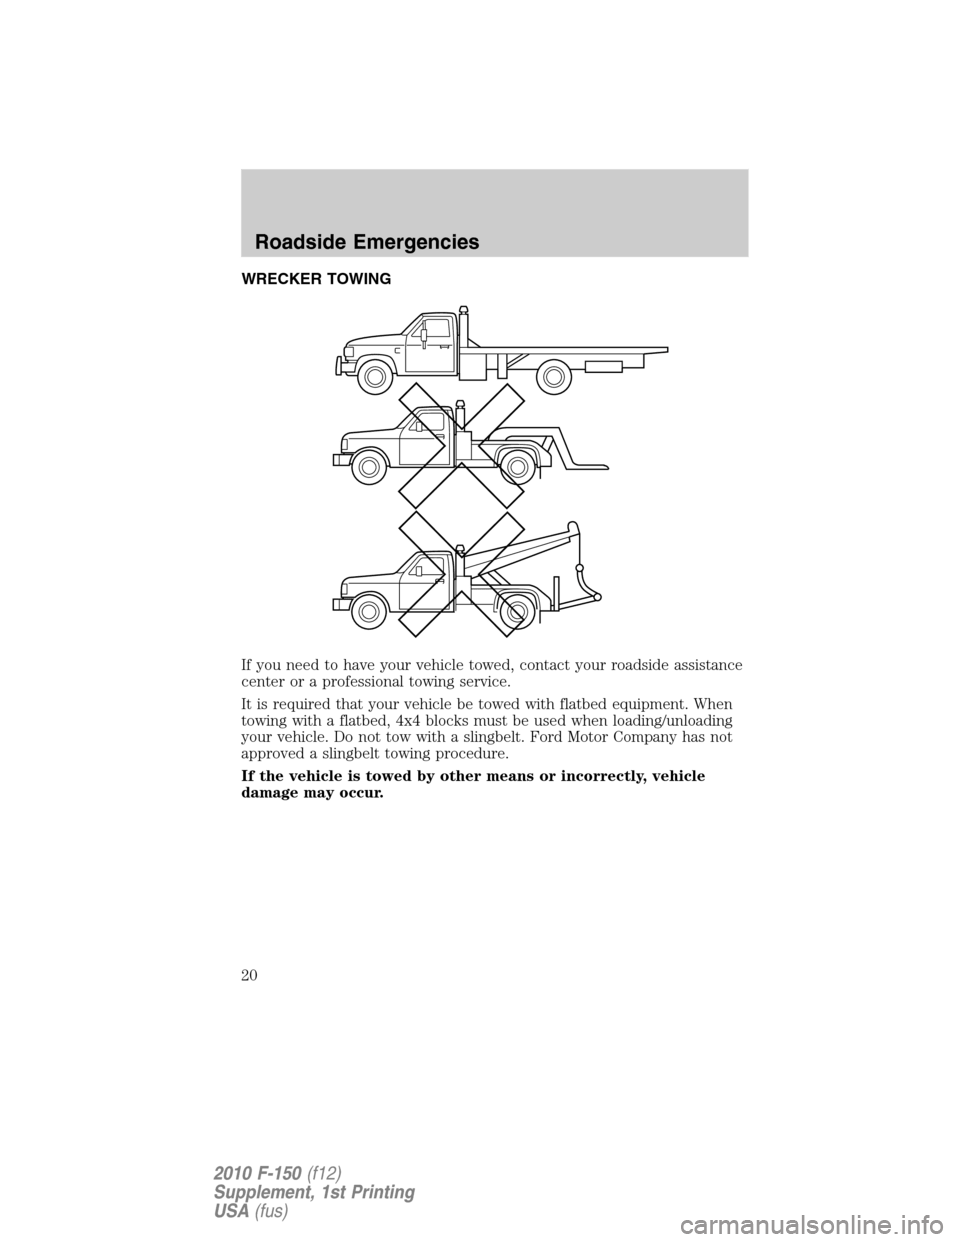 FORD F150 2010 12.G Raptor Supplement Manual